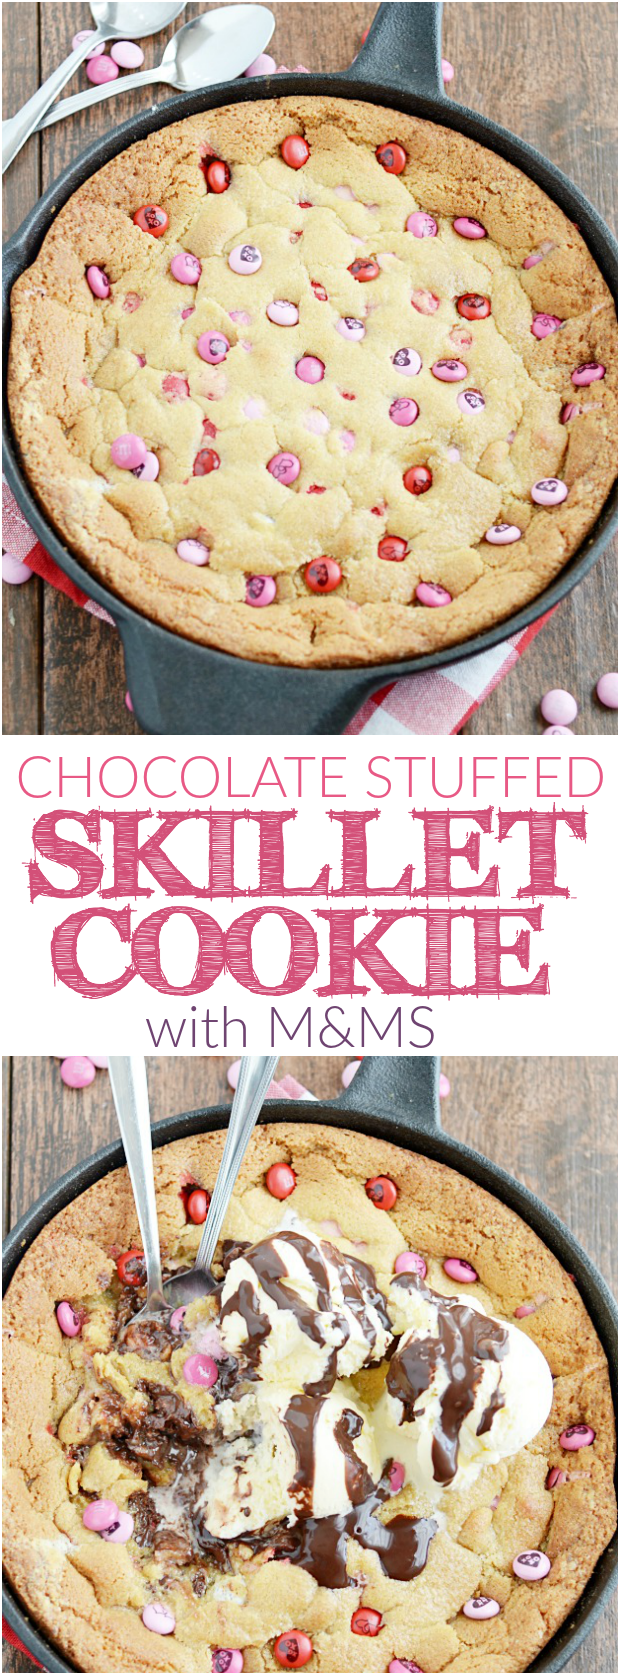 A giant M&M skillet cookie stuffed with chocolate. This is your new favorite recipe!